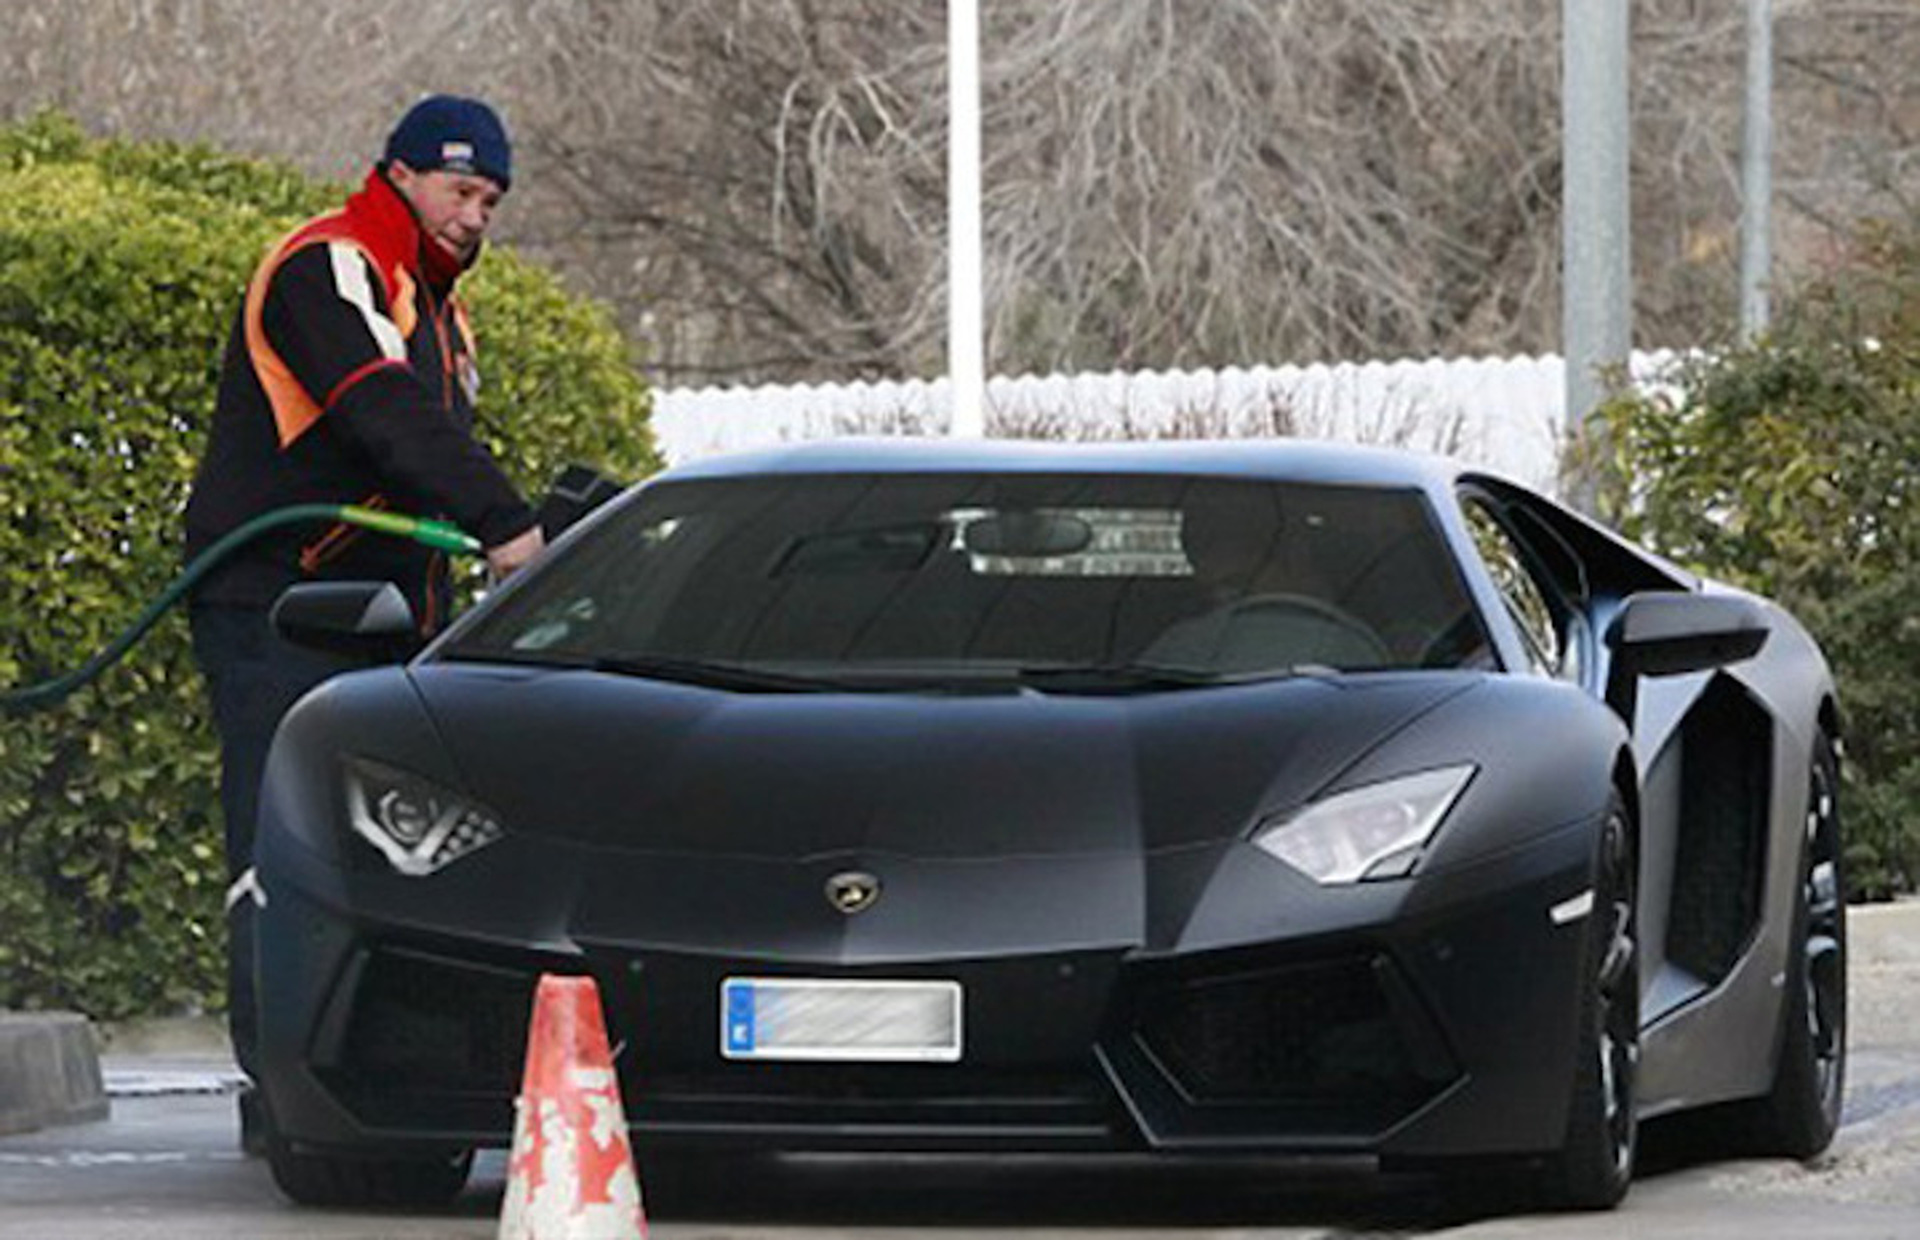 8 Soccer Stars and Their Gorgeous Cars